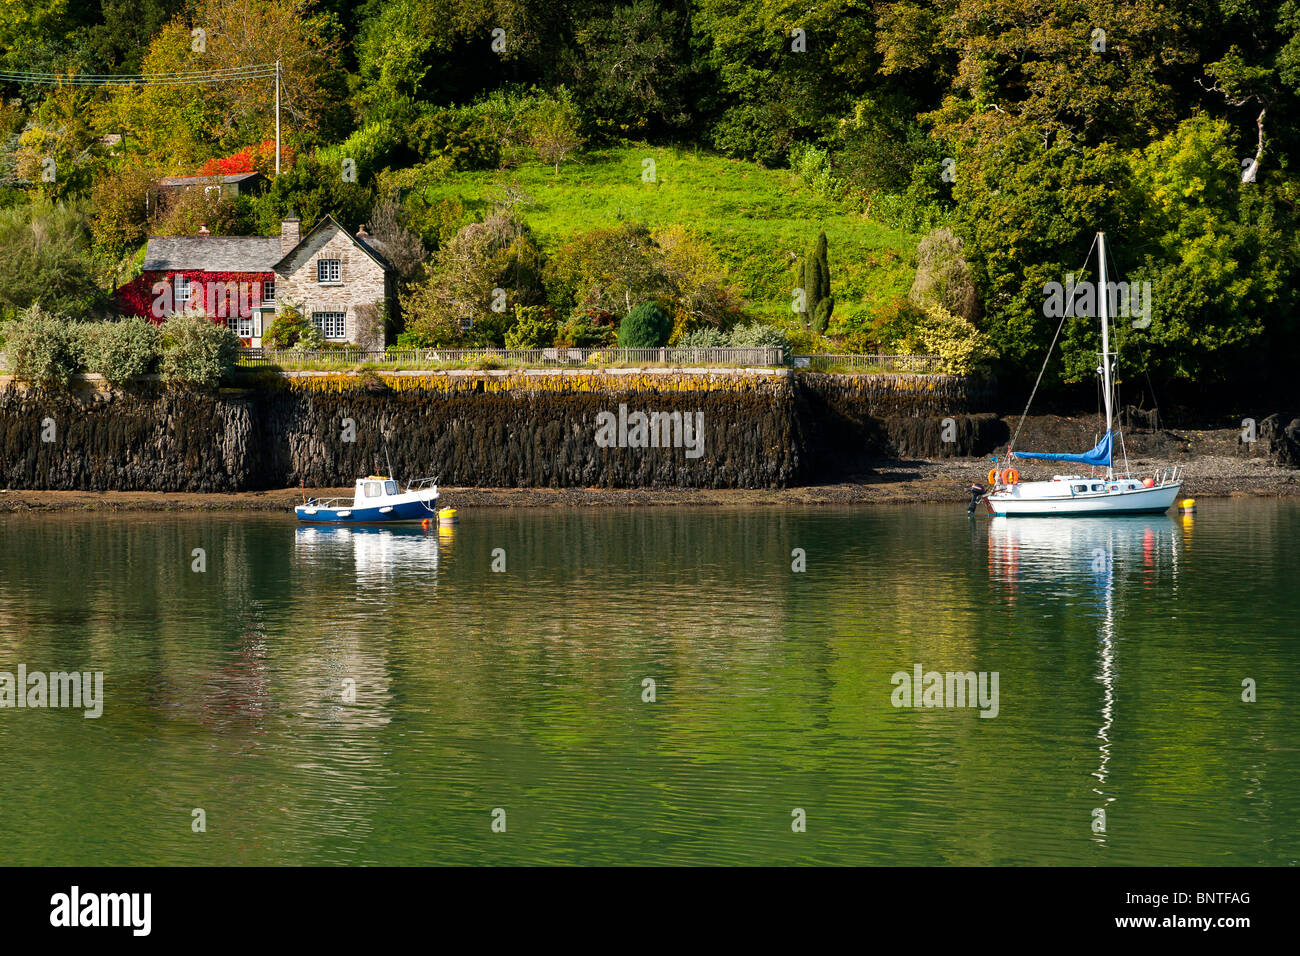 King Harry Ferry Cottage on the River Fal, South West, Cornwall, England, UK Stock Photo